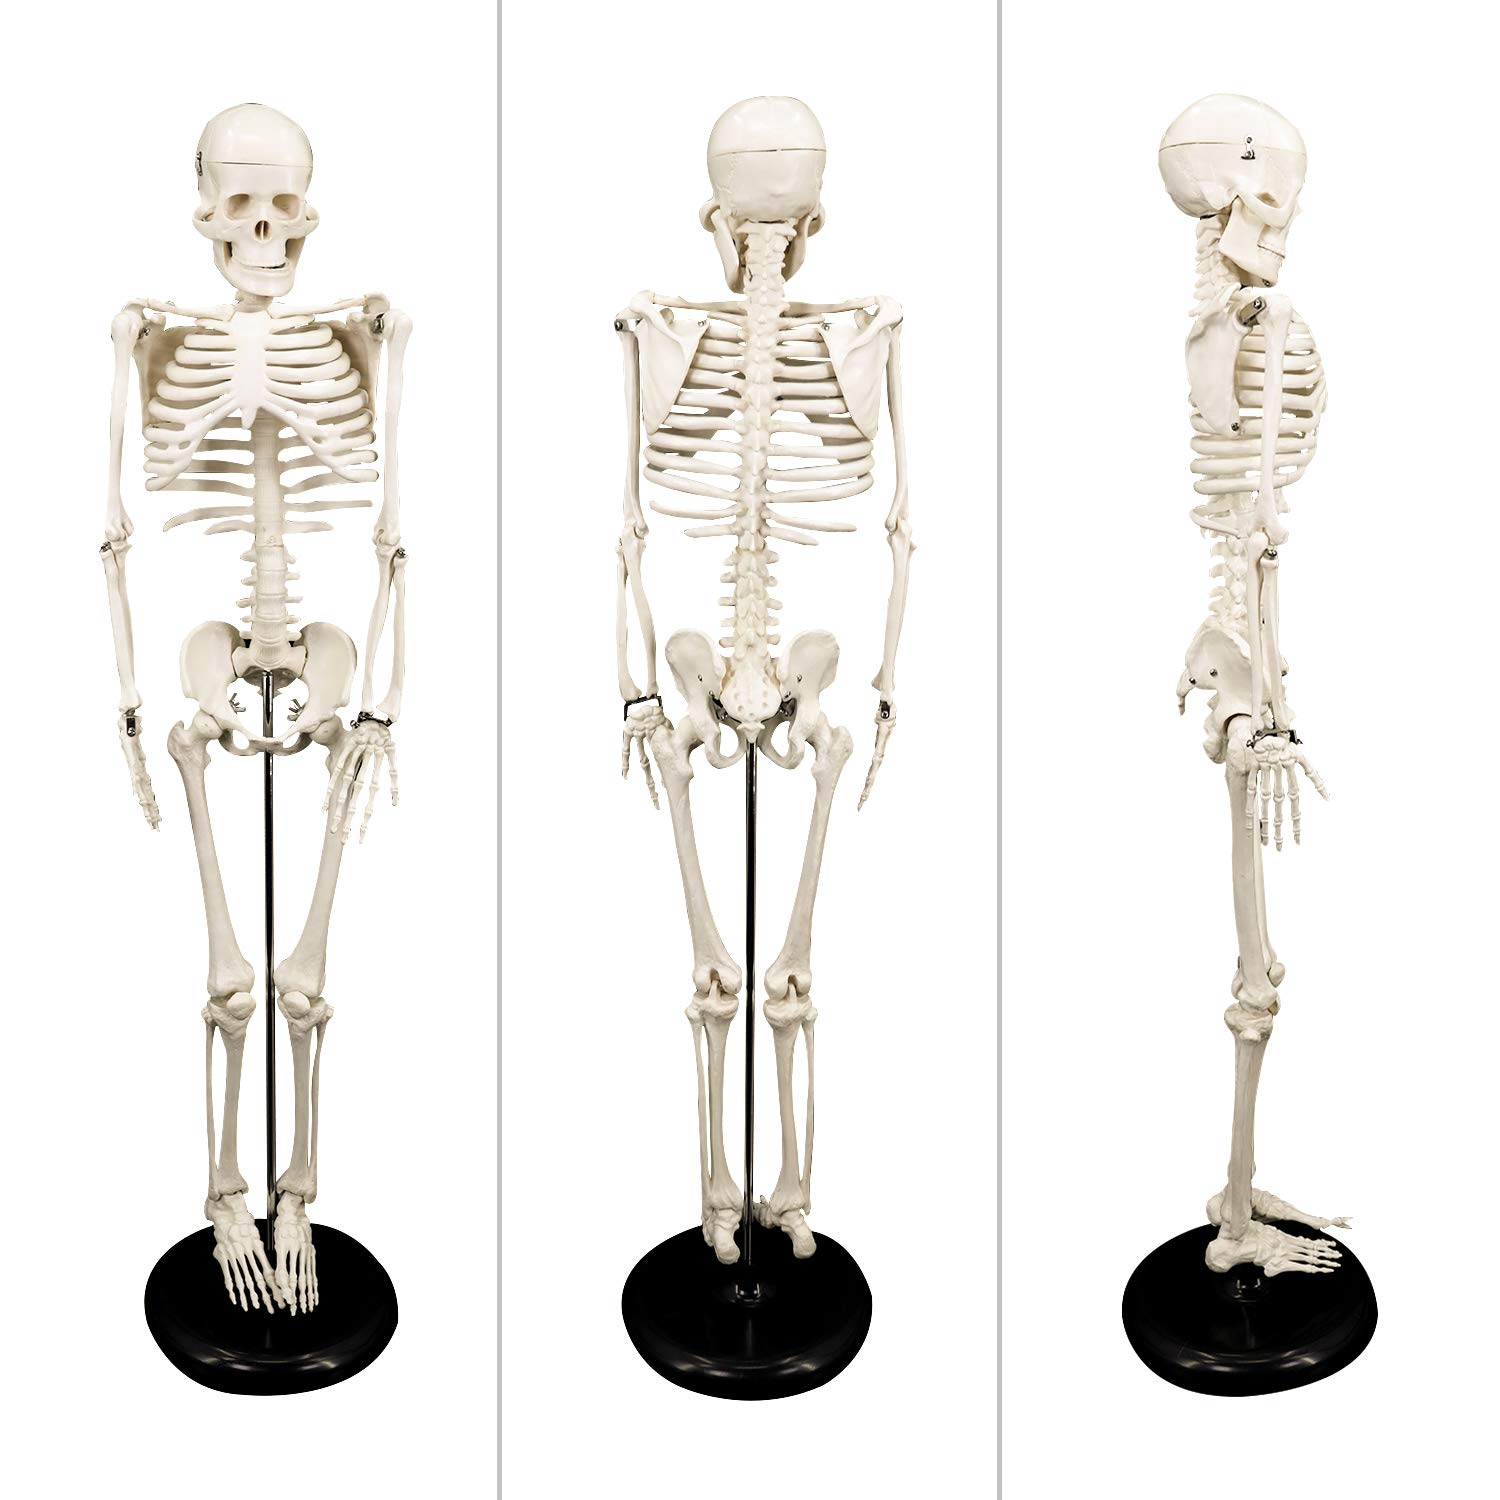 8 Koopro Anatomical Human Skeleton Model Removable Arms and Legs for Better Observing and Studying All Mobile Joints for Easy Manipulate Interactive Medical Replica for Educating and Teaching